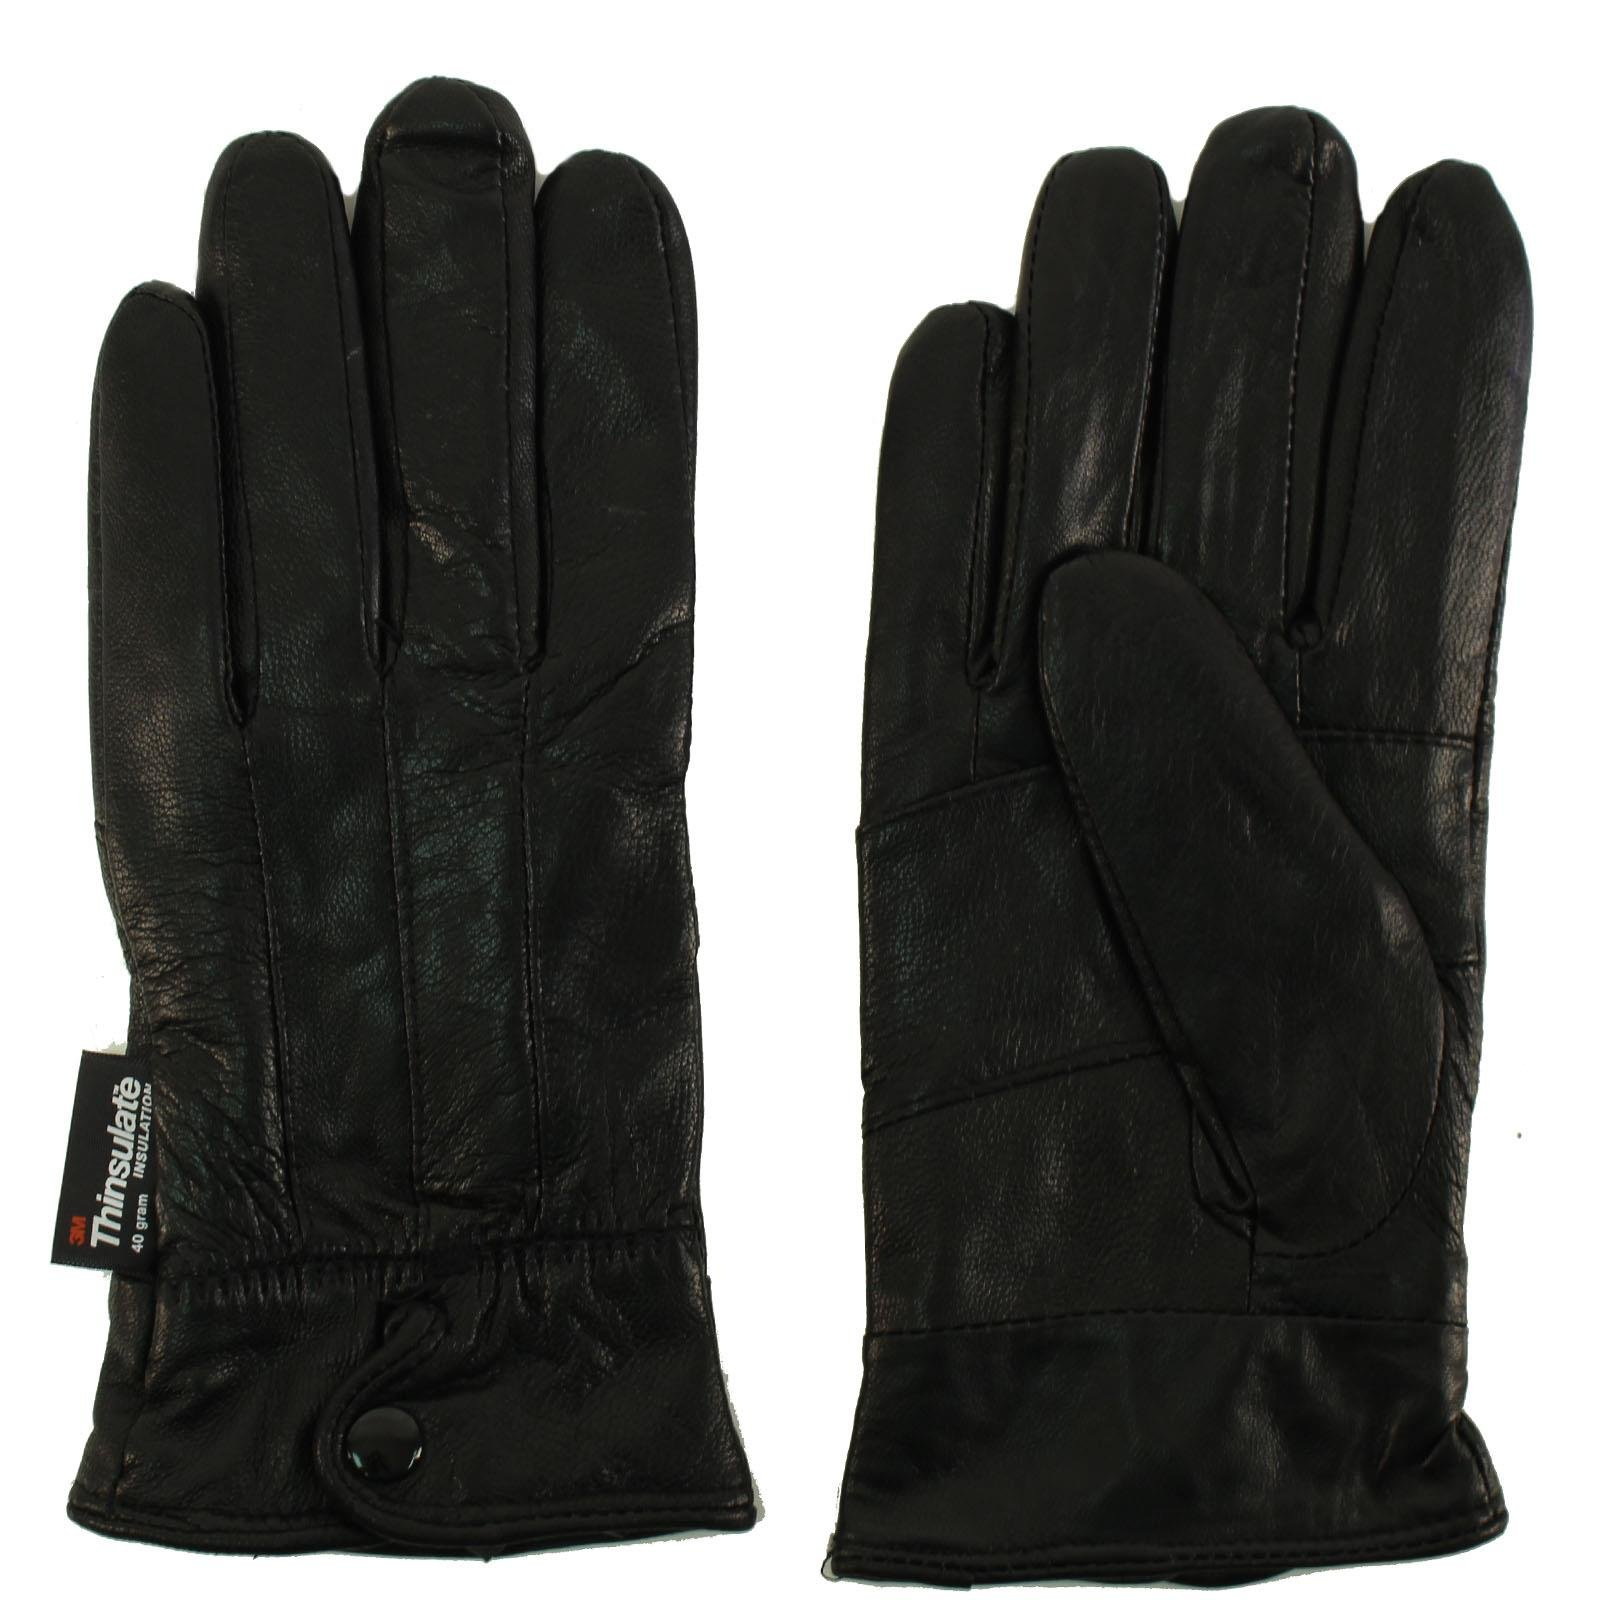 Ladies Winter 3M Thinsulate Soft Genuine Leather Wrist Snap Gloves Black Small